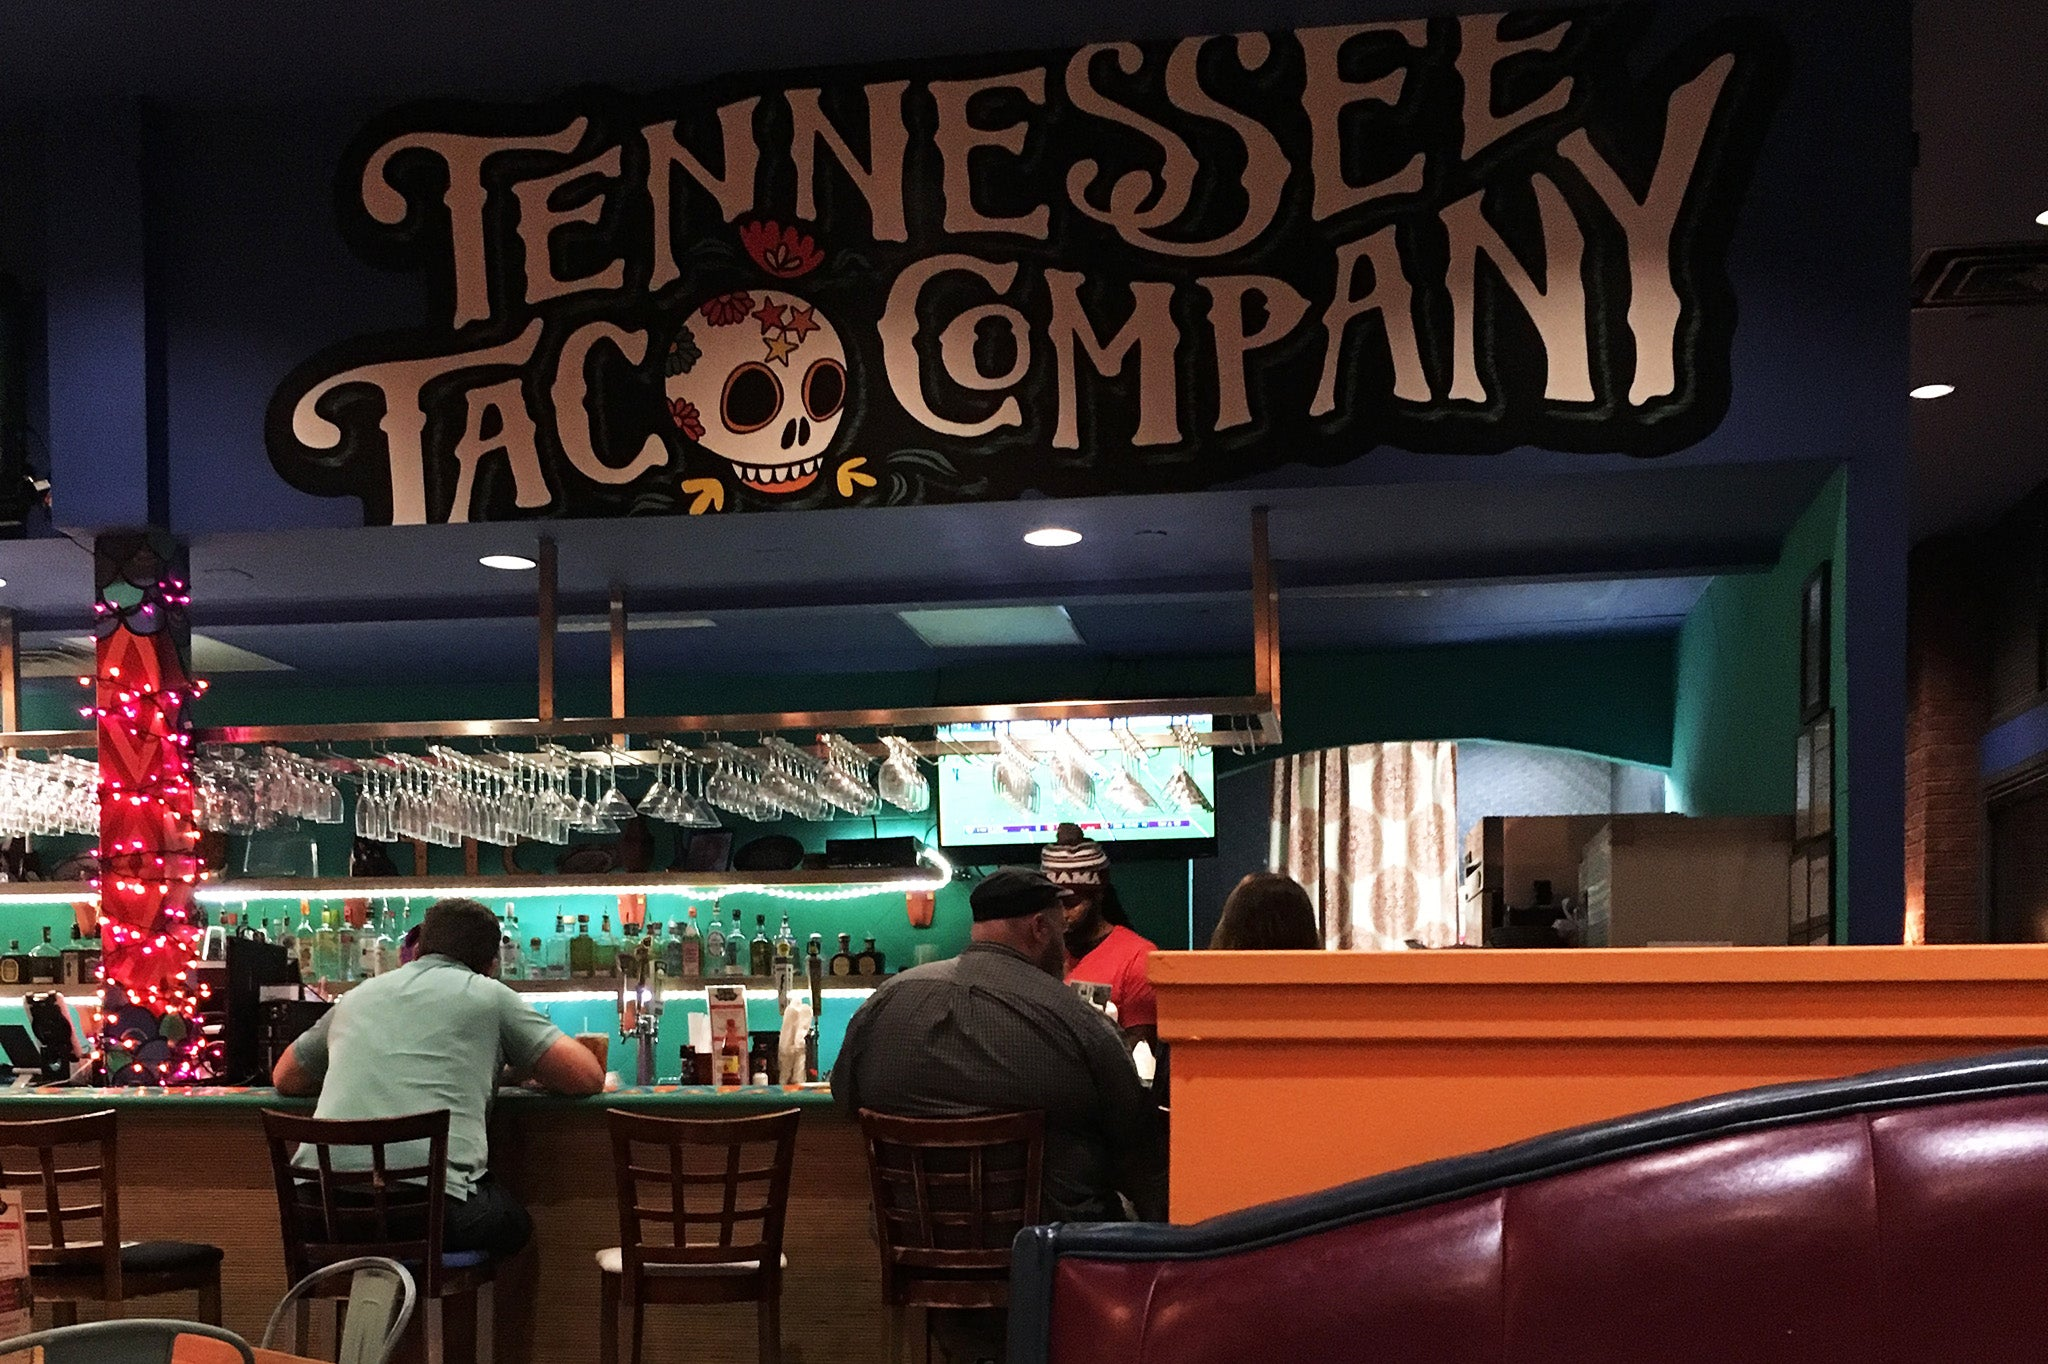 ShopMucho goes to Tennessee Taco Company for dinner on a Saturday night